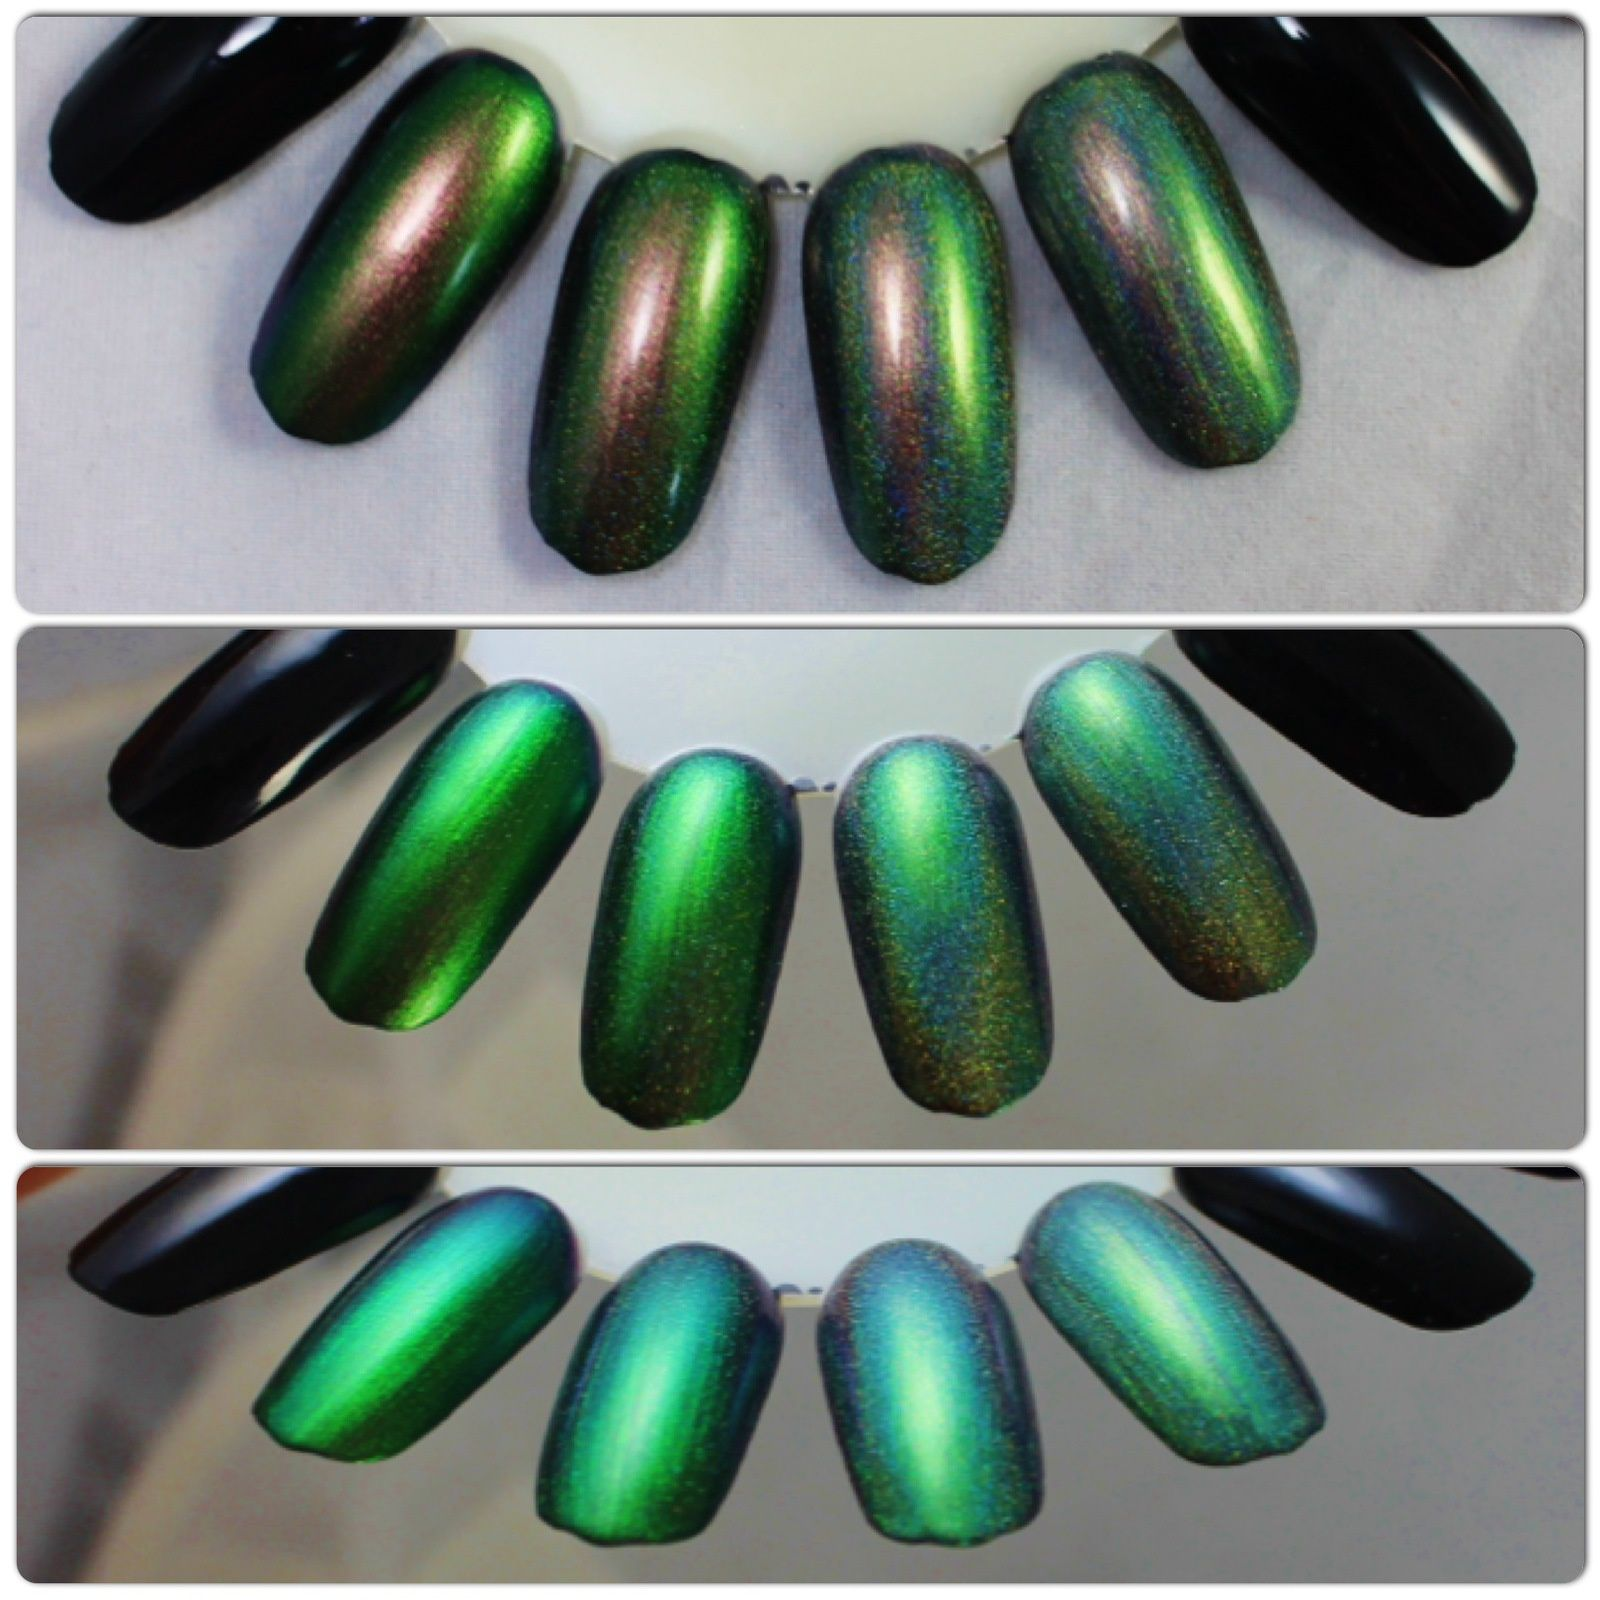 ILNP Mutagen / EP Hey Jude / EP The Youth / DDP Bohemian Rhapsody